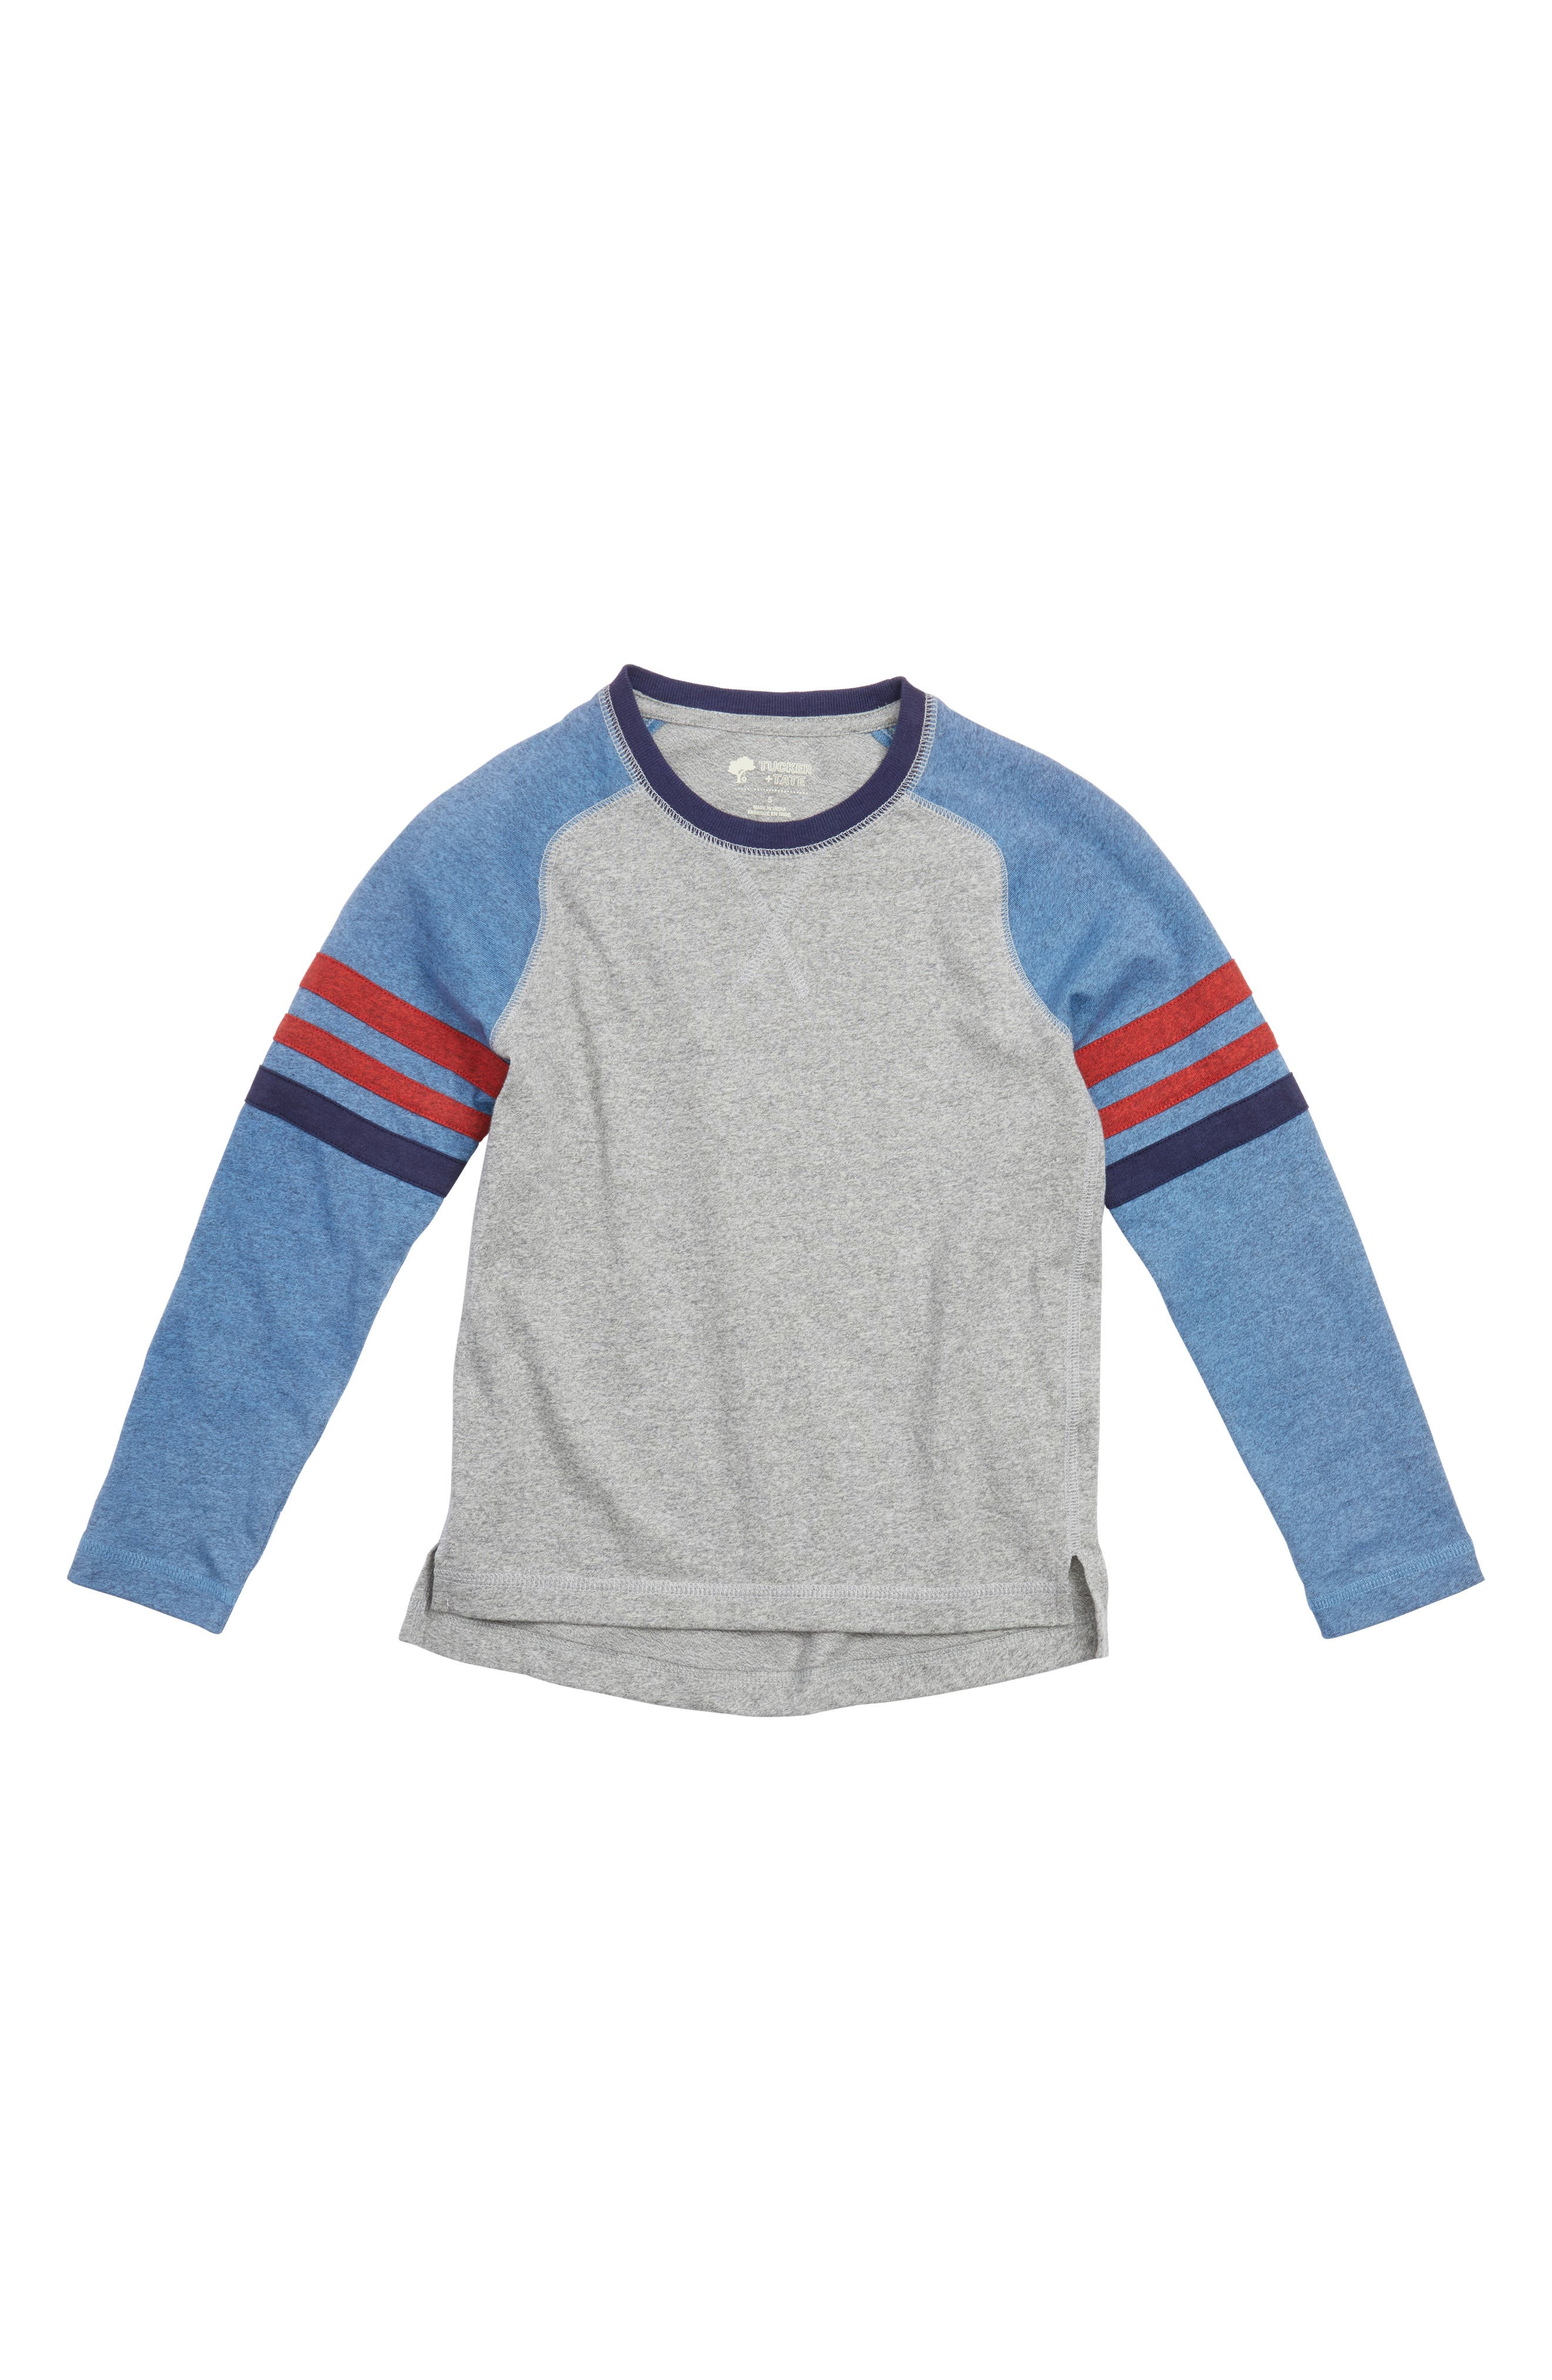 Tucker + Tate Varsity Raglan T-Shirt (Toddler Boys & Little Boys)